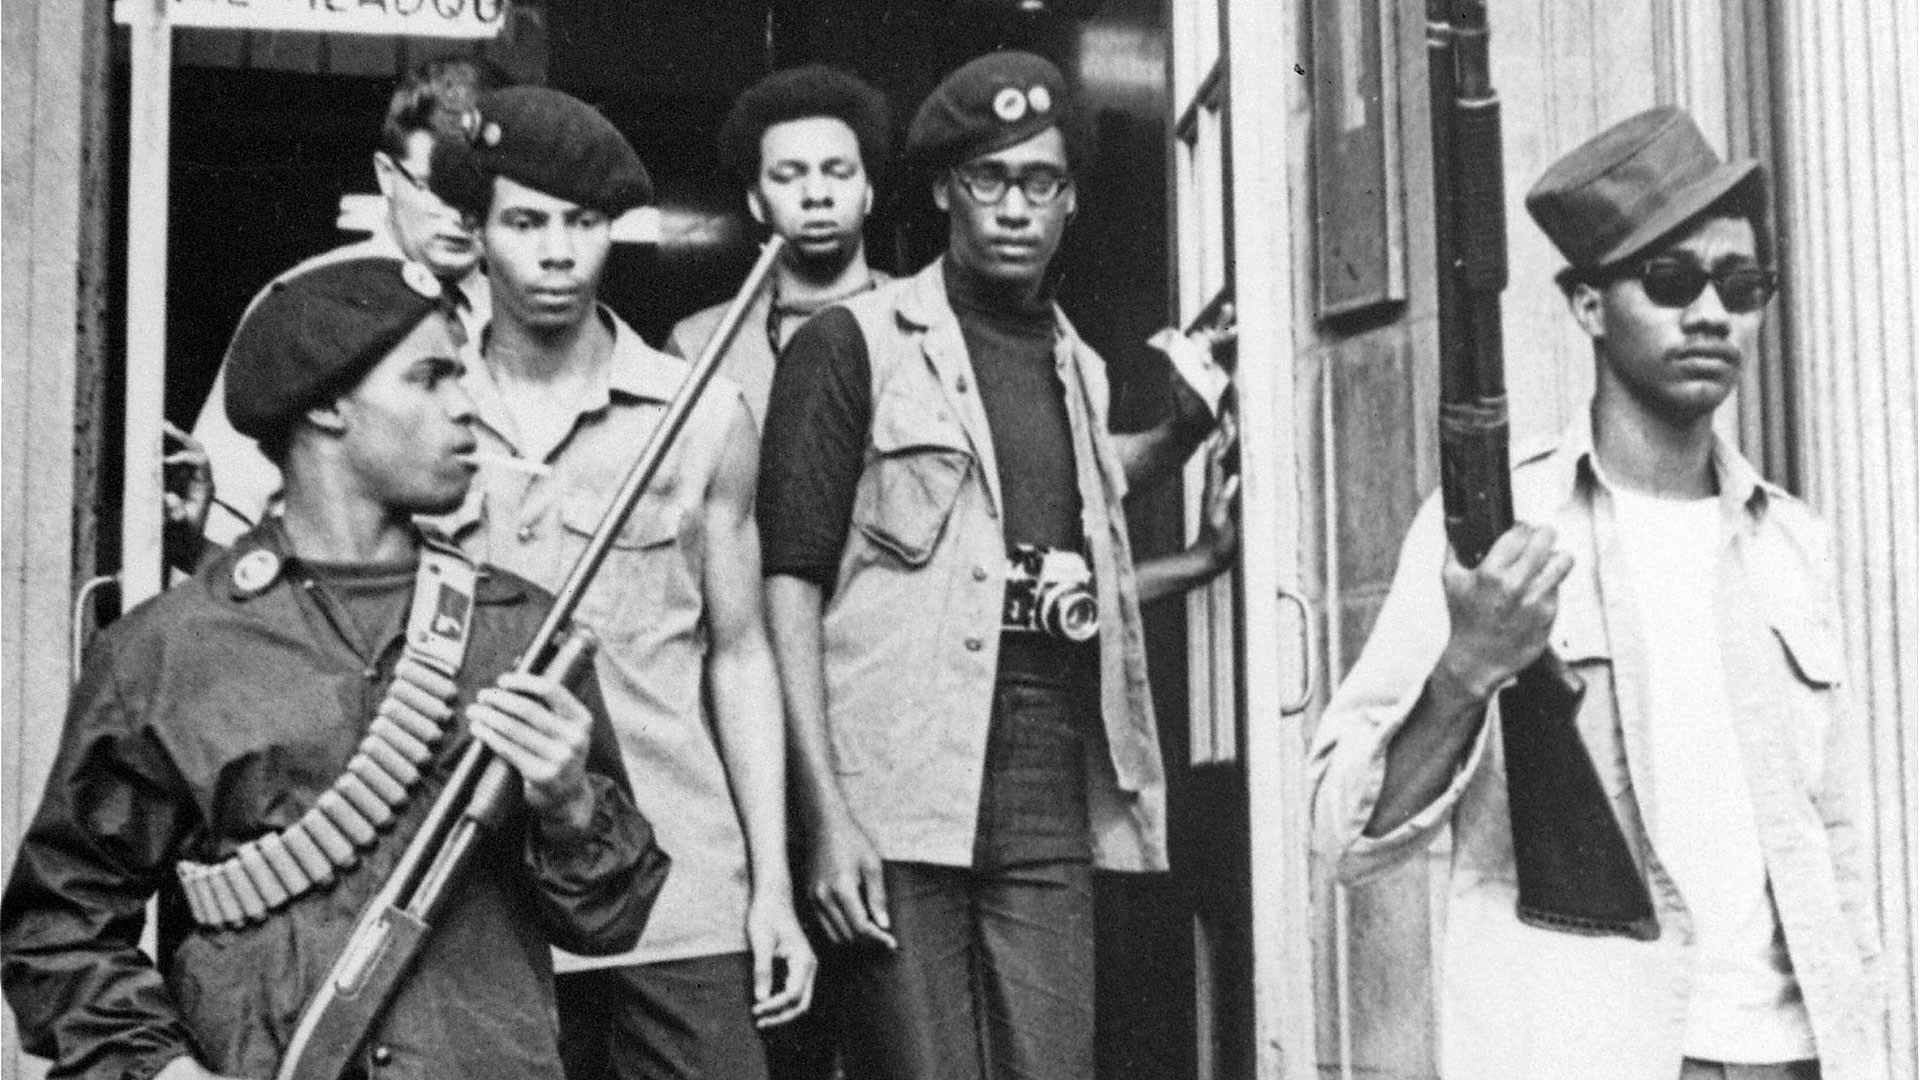 Black Panthers exiting building armed with rifles.